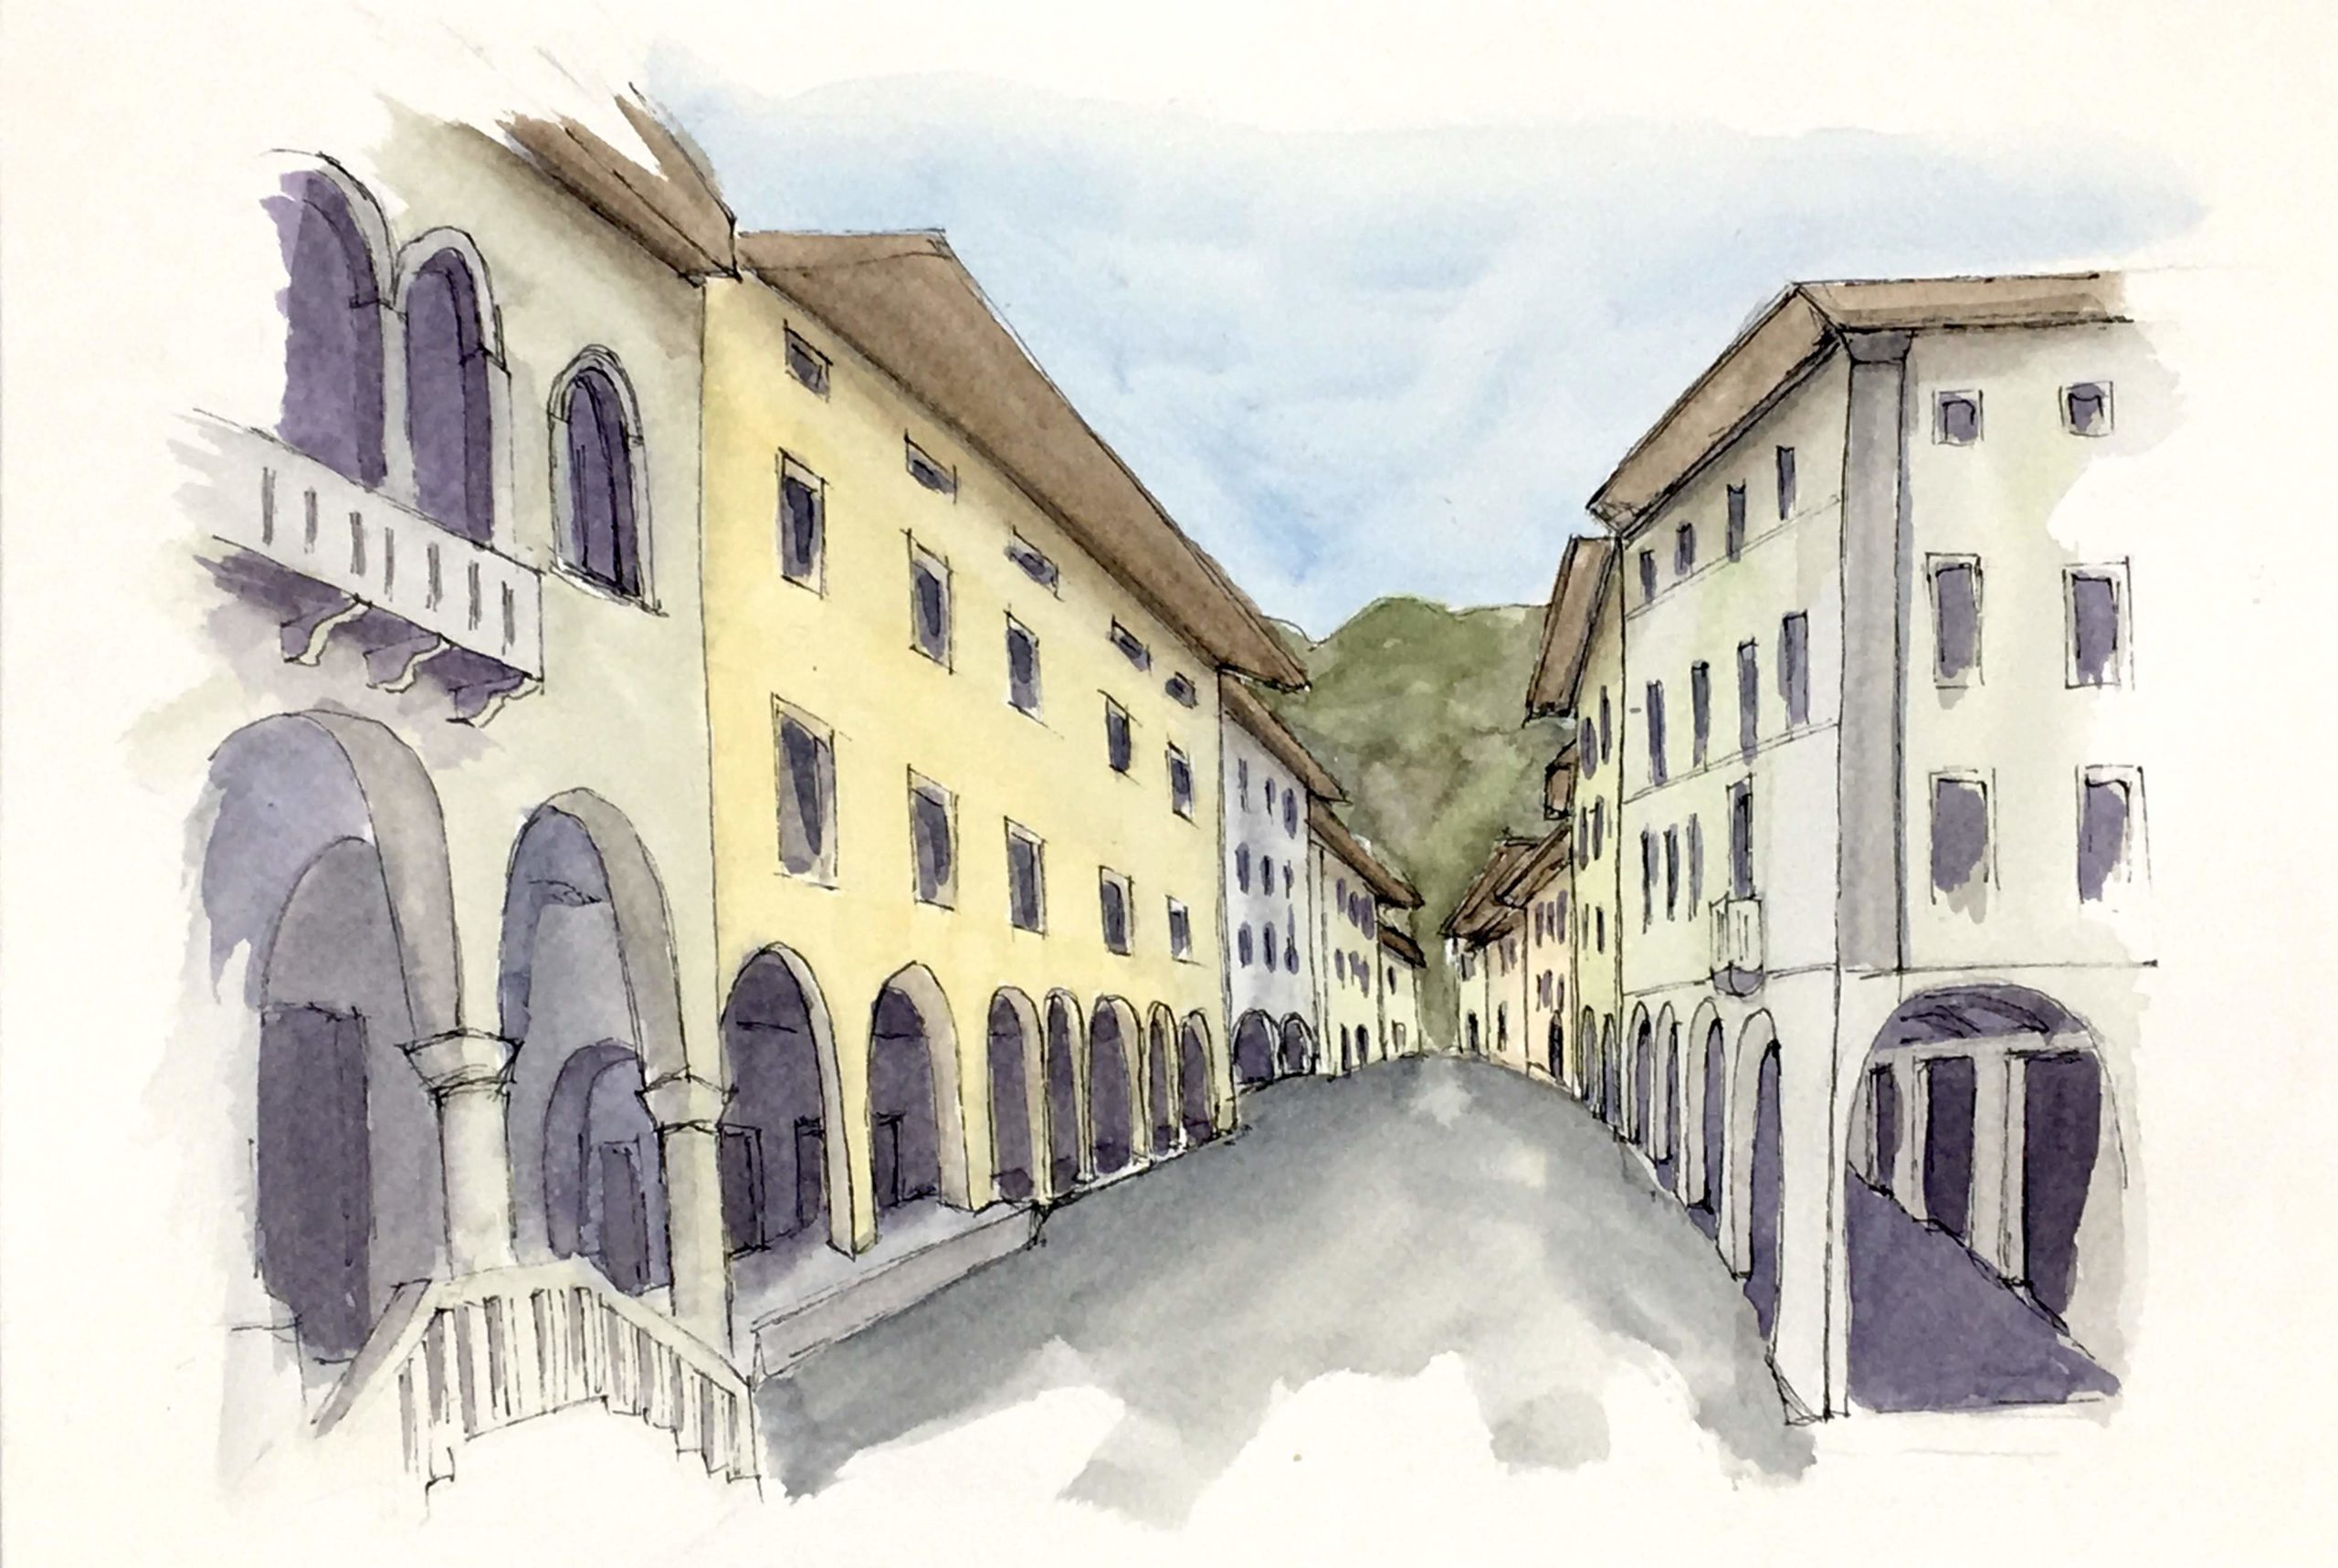 Painting of View of the historical center of Gemona